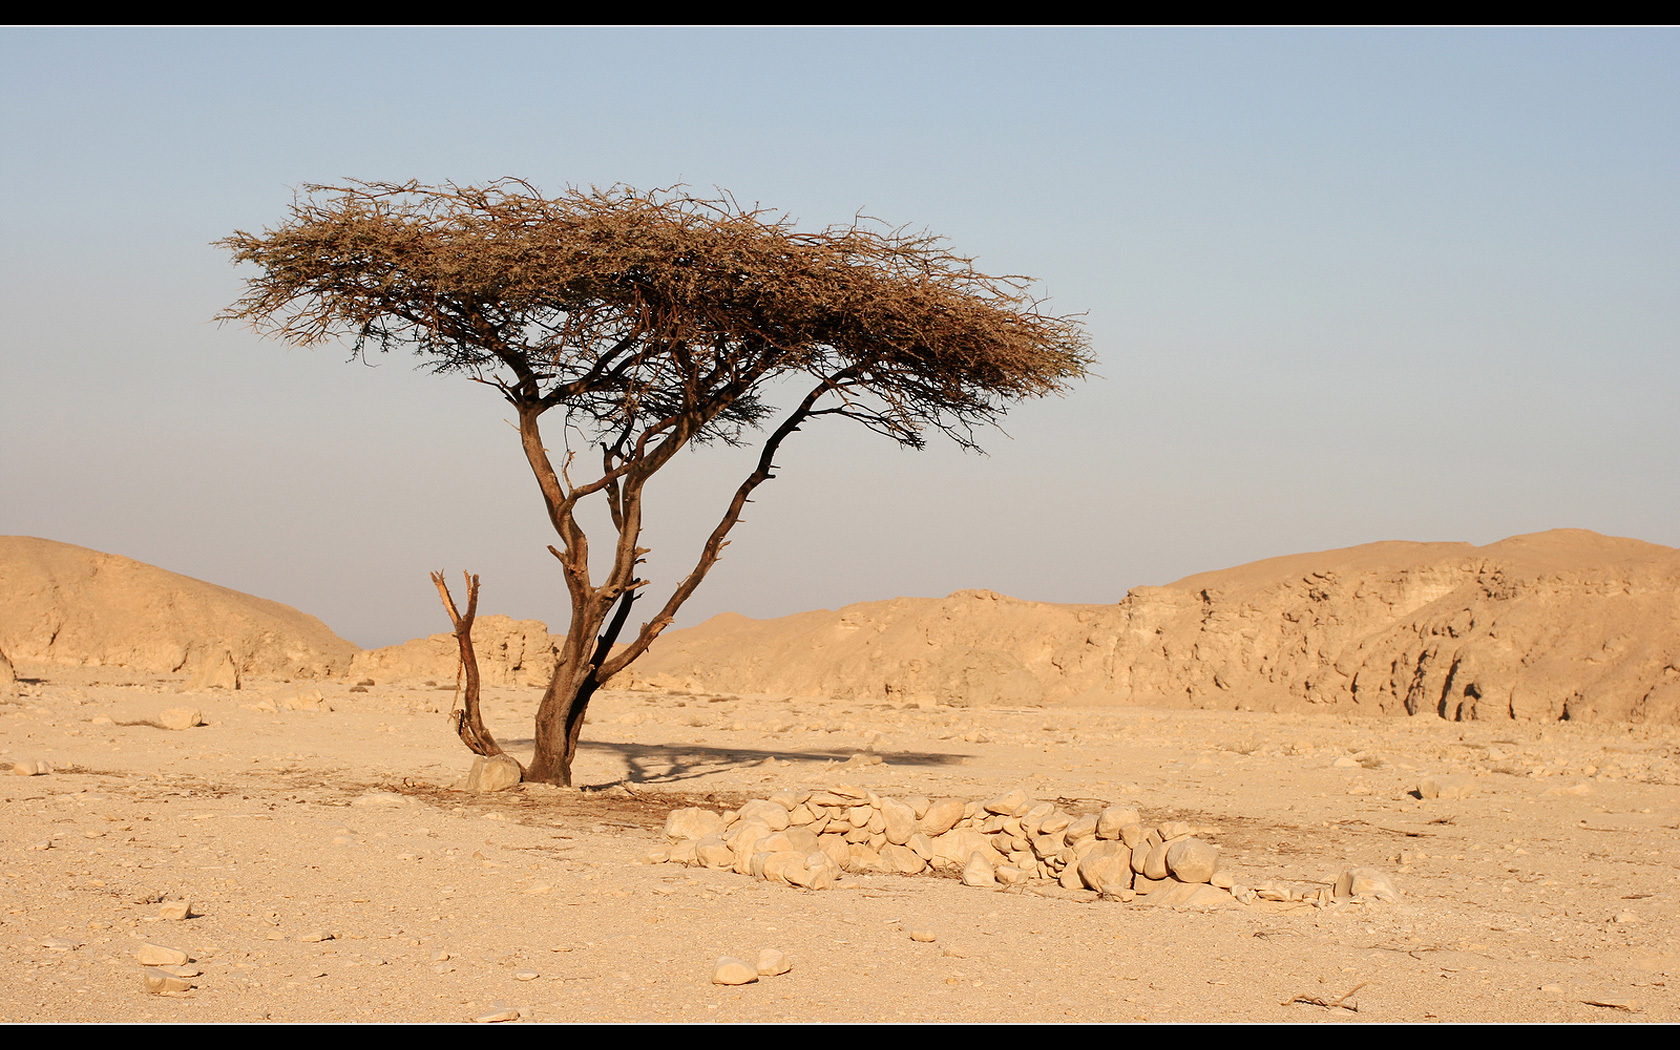 19908 download wallpaper Landscape, Trees, Savanna screensavers and pictures for free